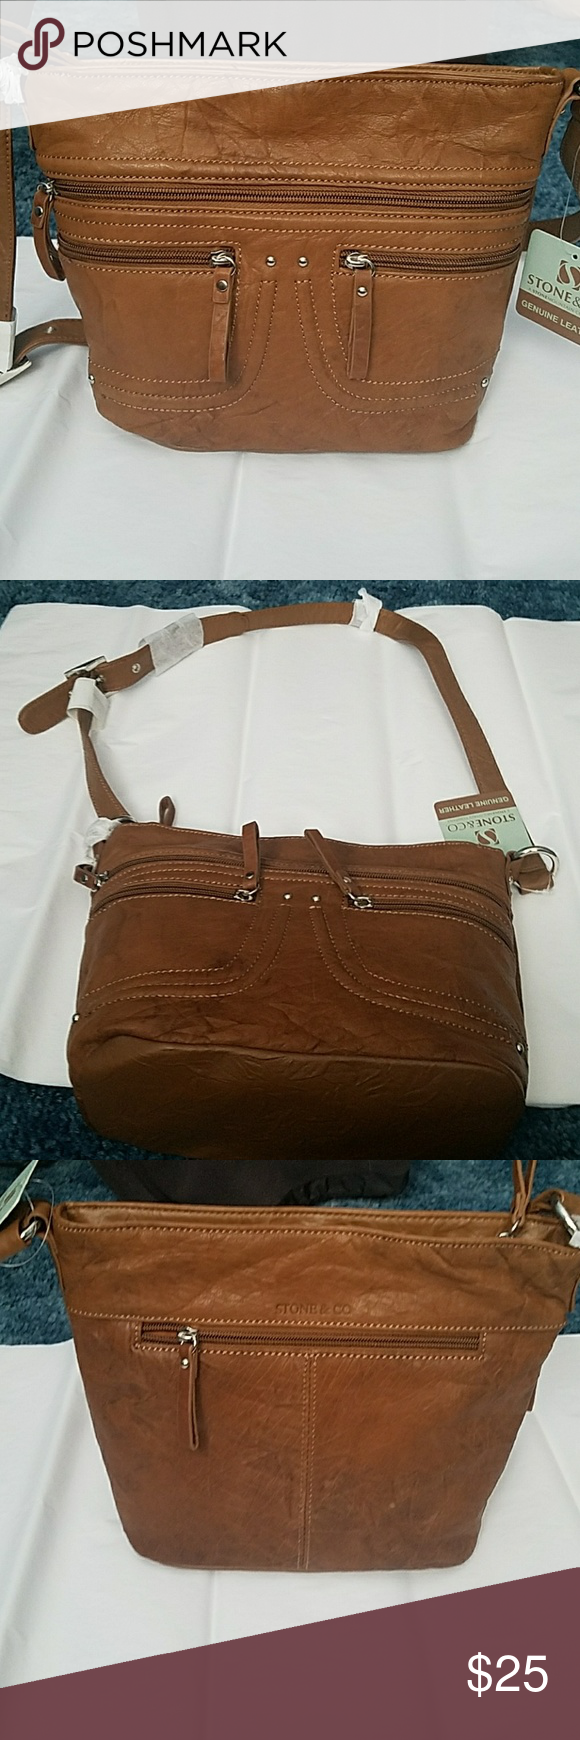 Beautiful Genuine Leather Purse Brand New Still With Tags Made By Stone And Company Lots Of Zippers Pockets Co Bags